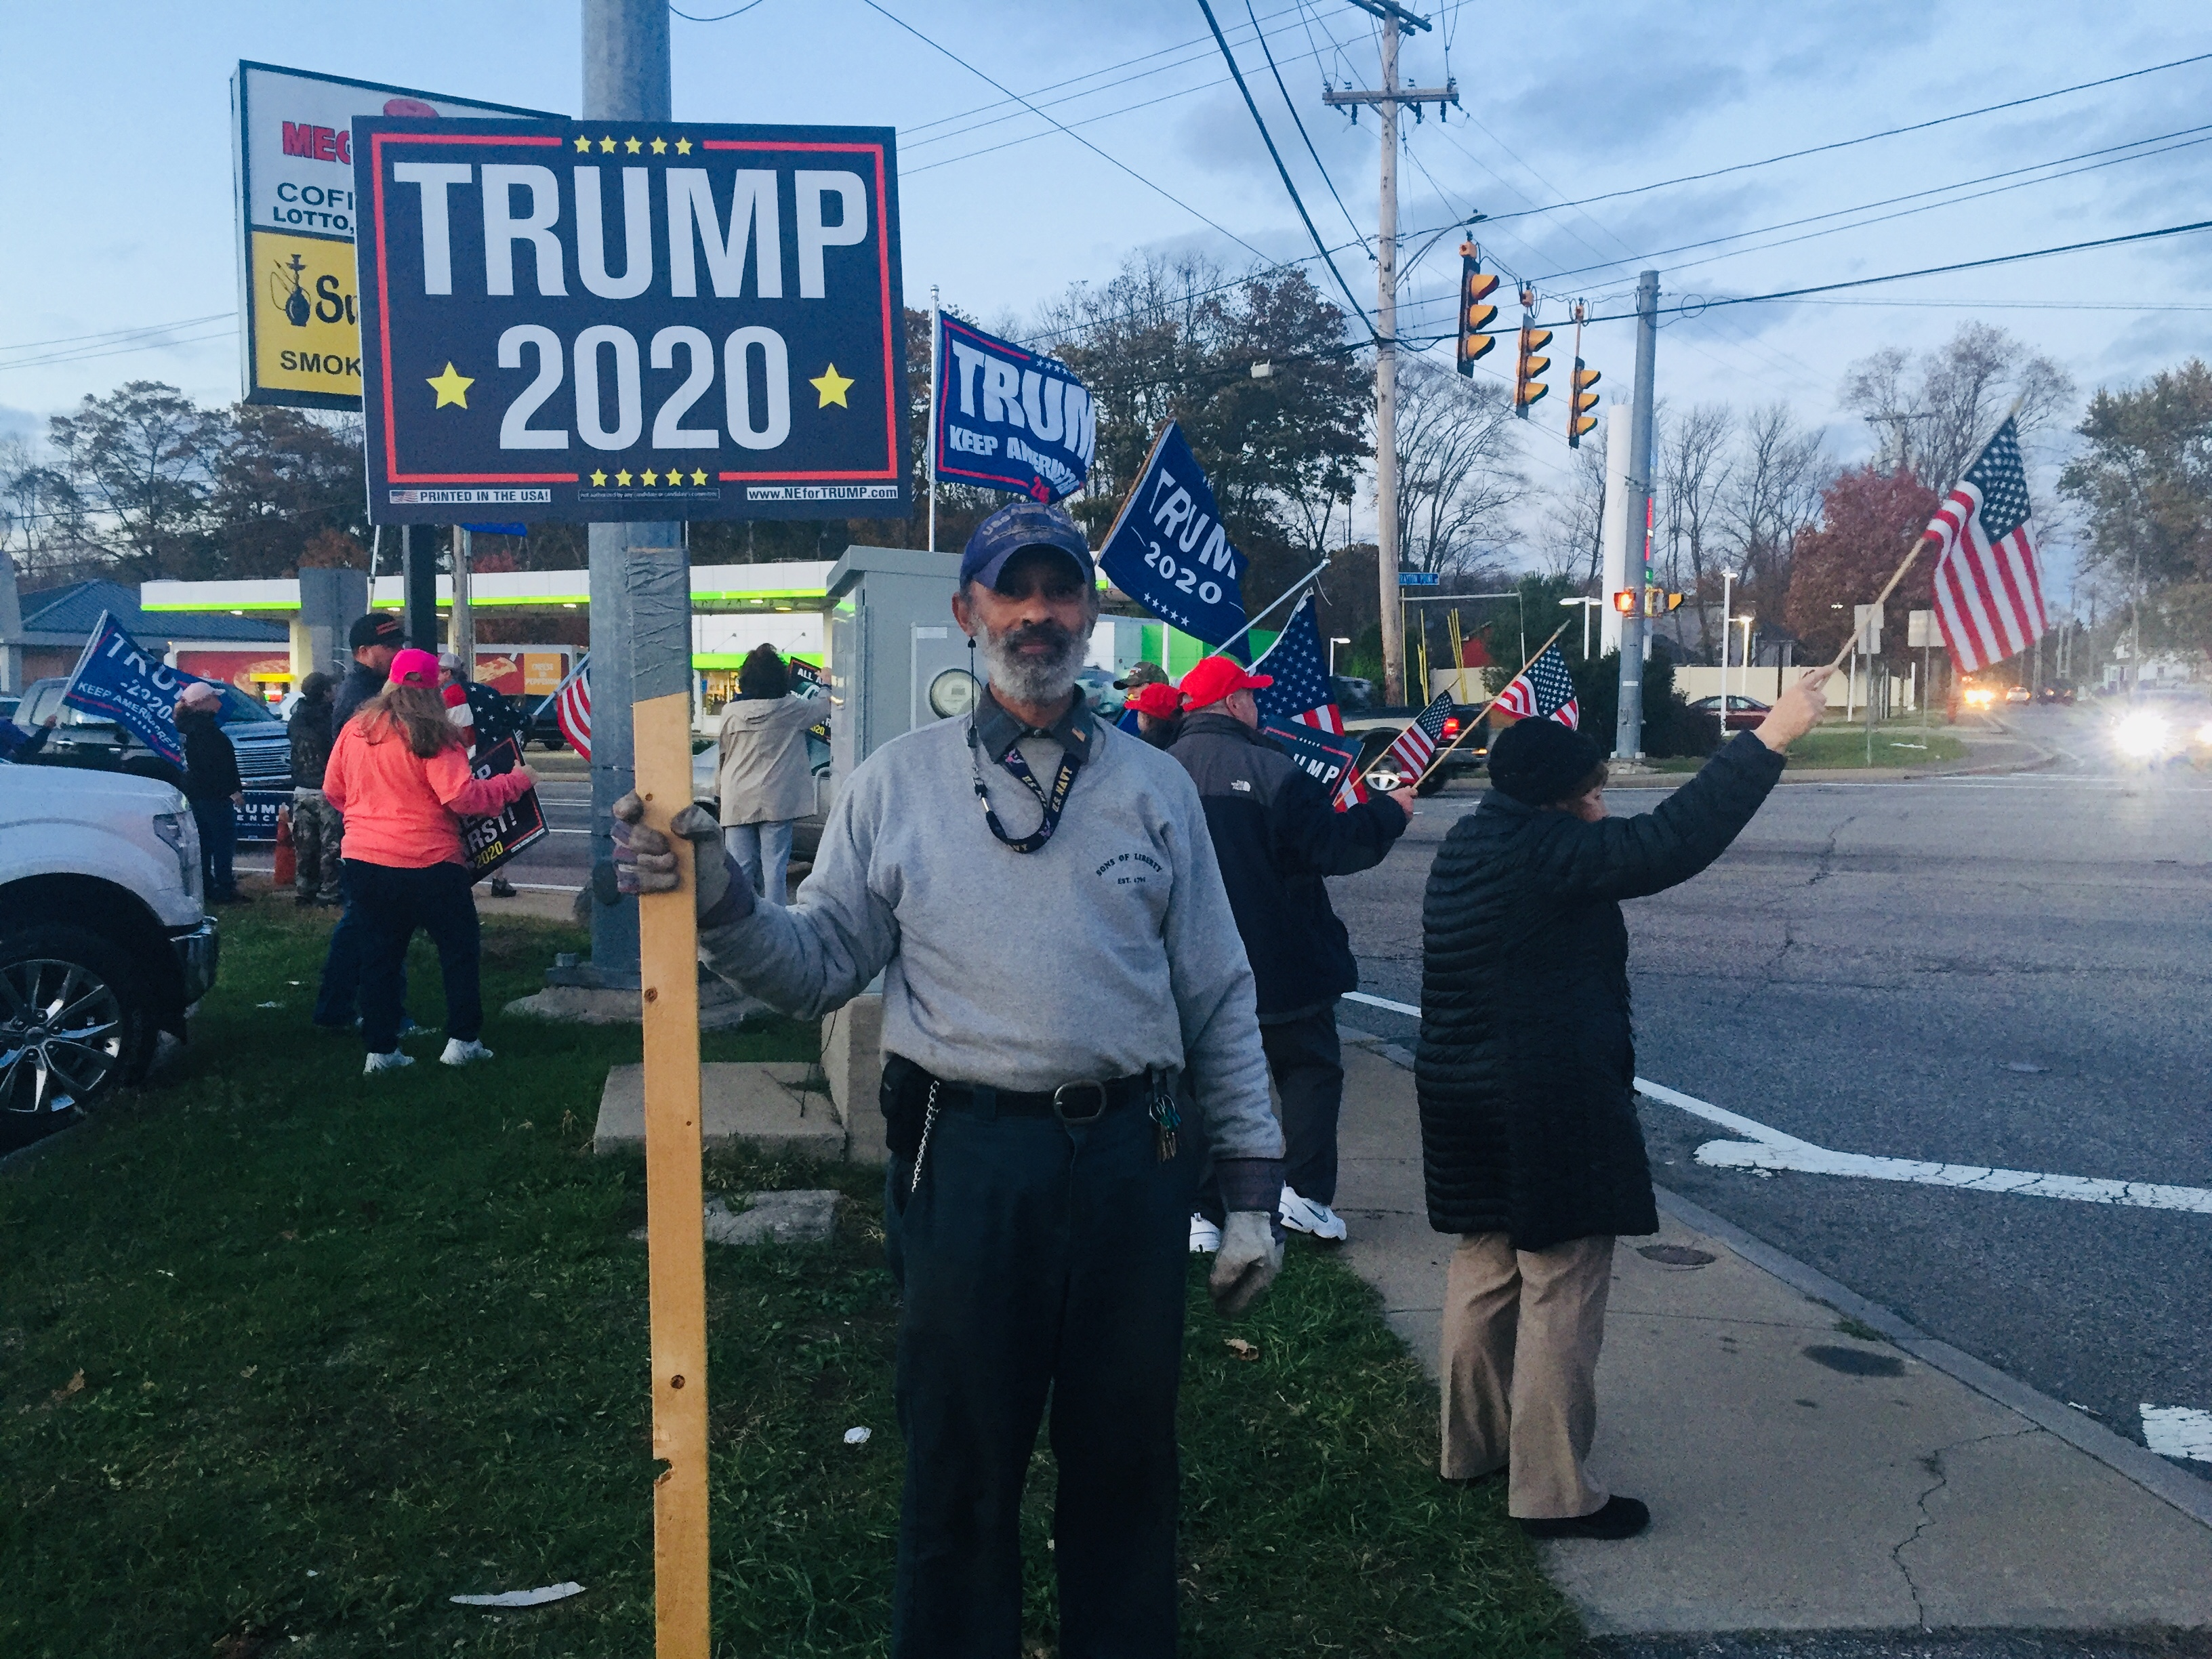 Joel, a supporter of President Trump, holds a sign during a standout outside of a Trump merchandise story in Somerset.